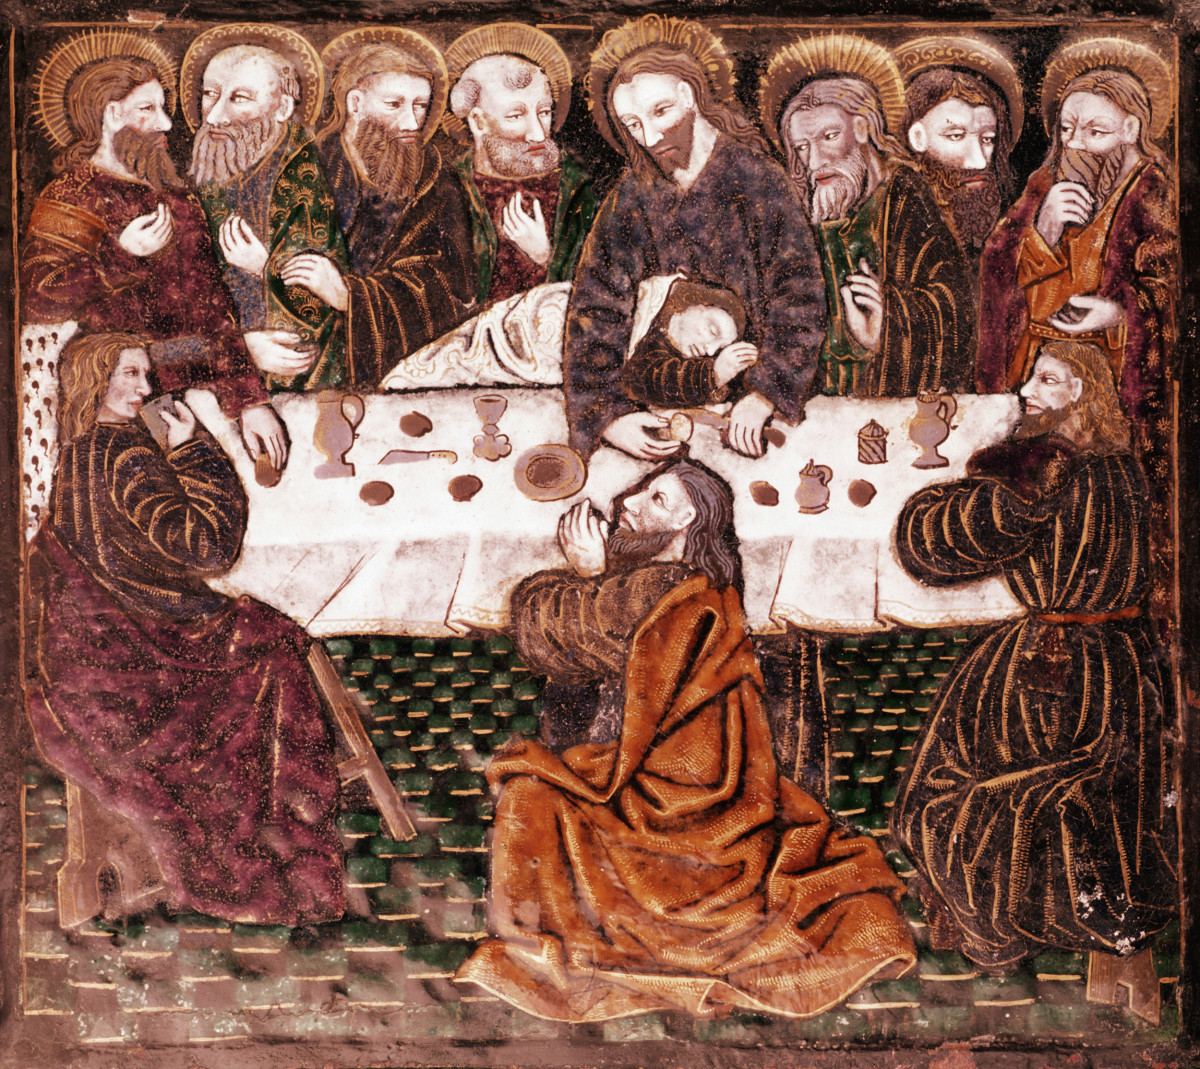 Jesus made an announcement of betrayal at the Last Supper. Judas is seen seated at the opposite side of the table.